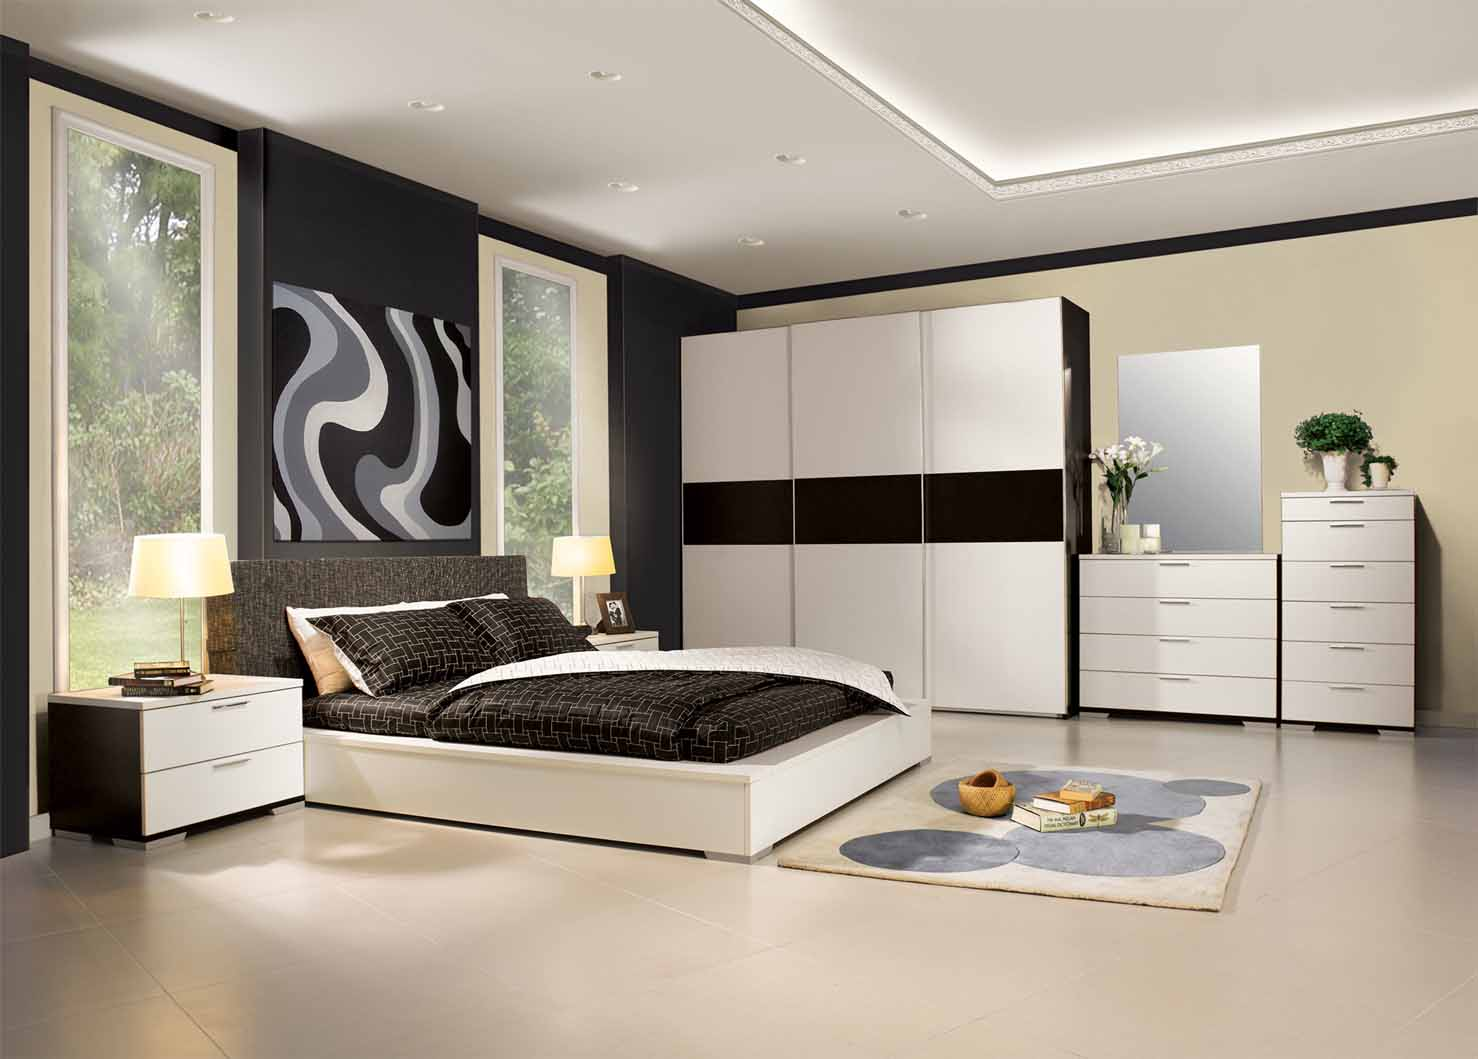 Awesome bedrooms ideas pictures 2014 decorating bedrooms for Bedroom ideas with pictures